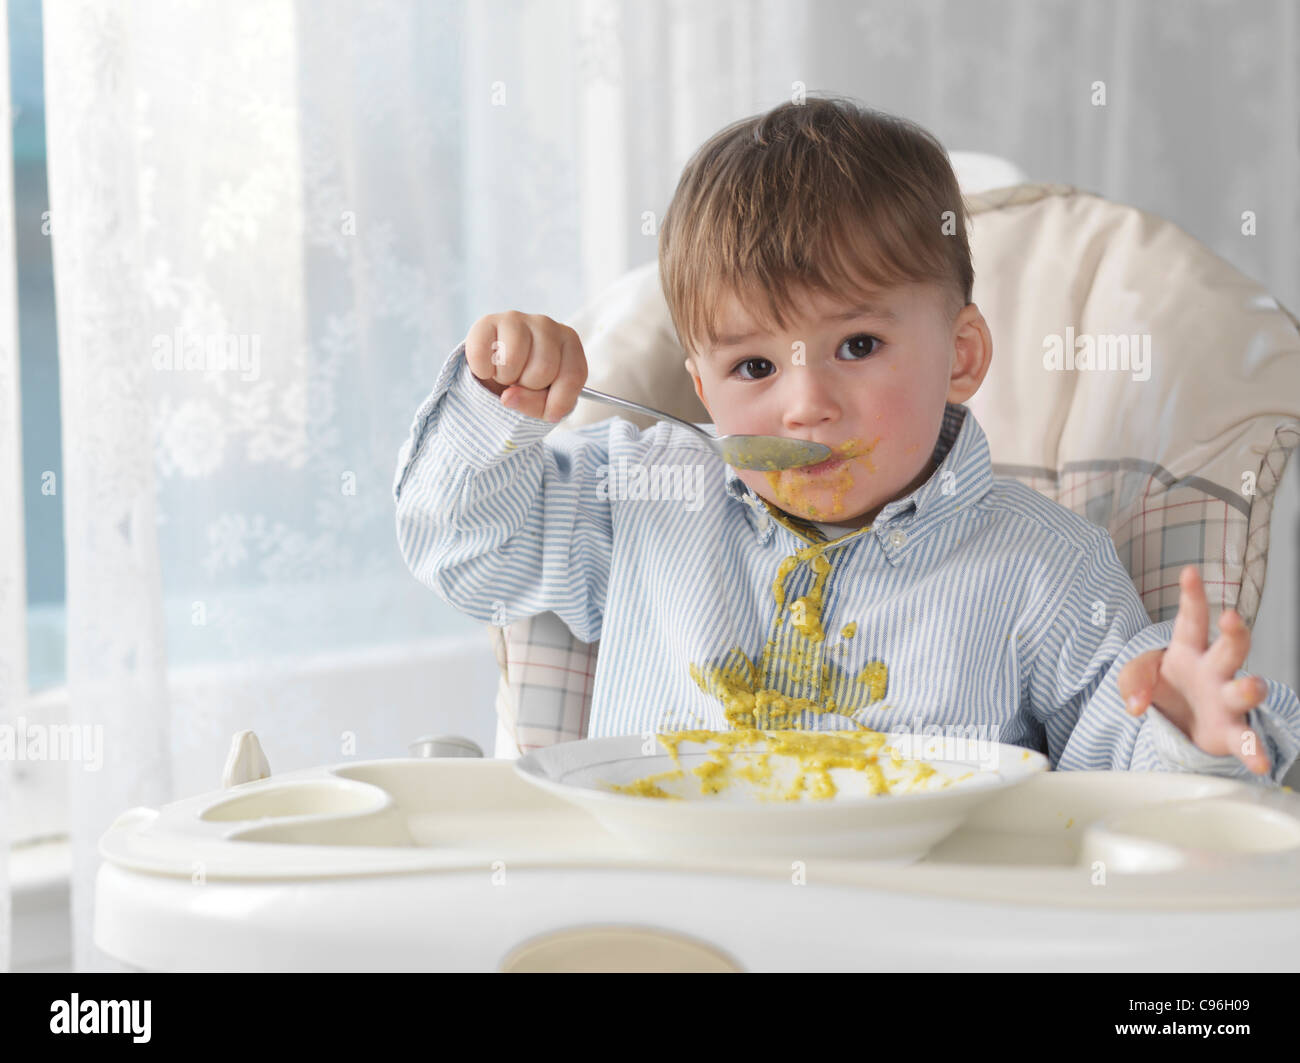 High Chair For Baby Boy Dirty Child Stock Photos And Dirty Child Stock Images Alamy